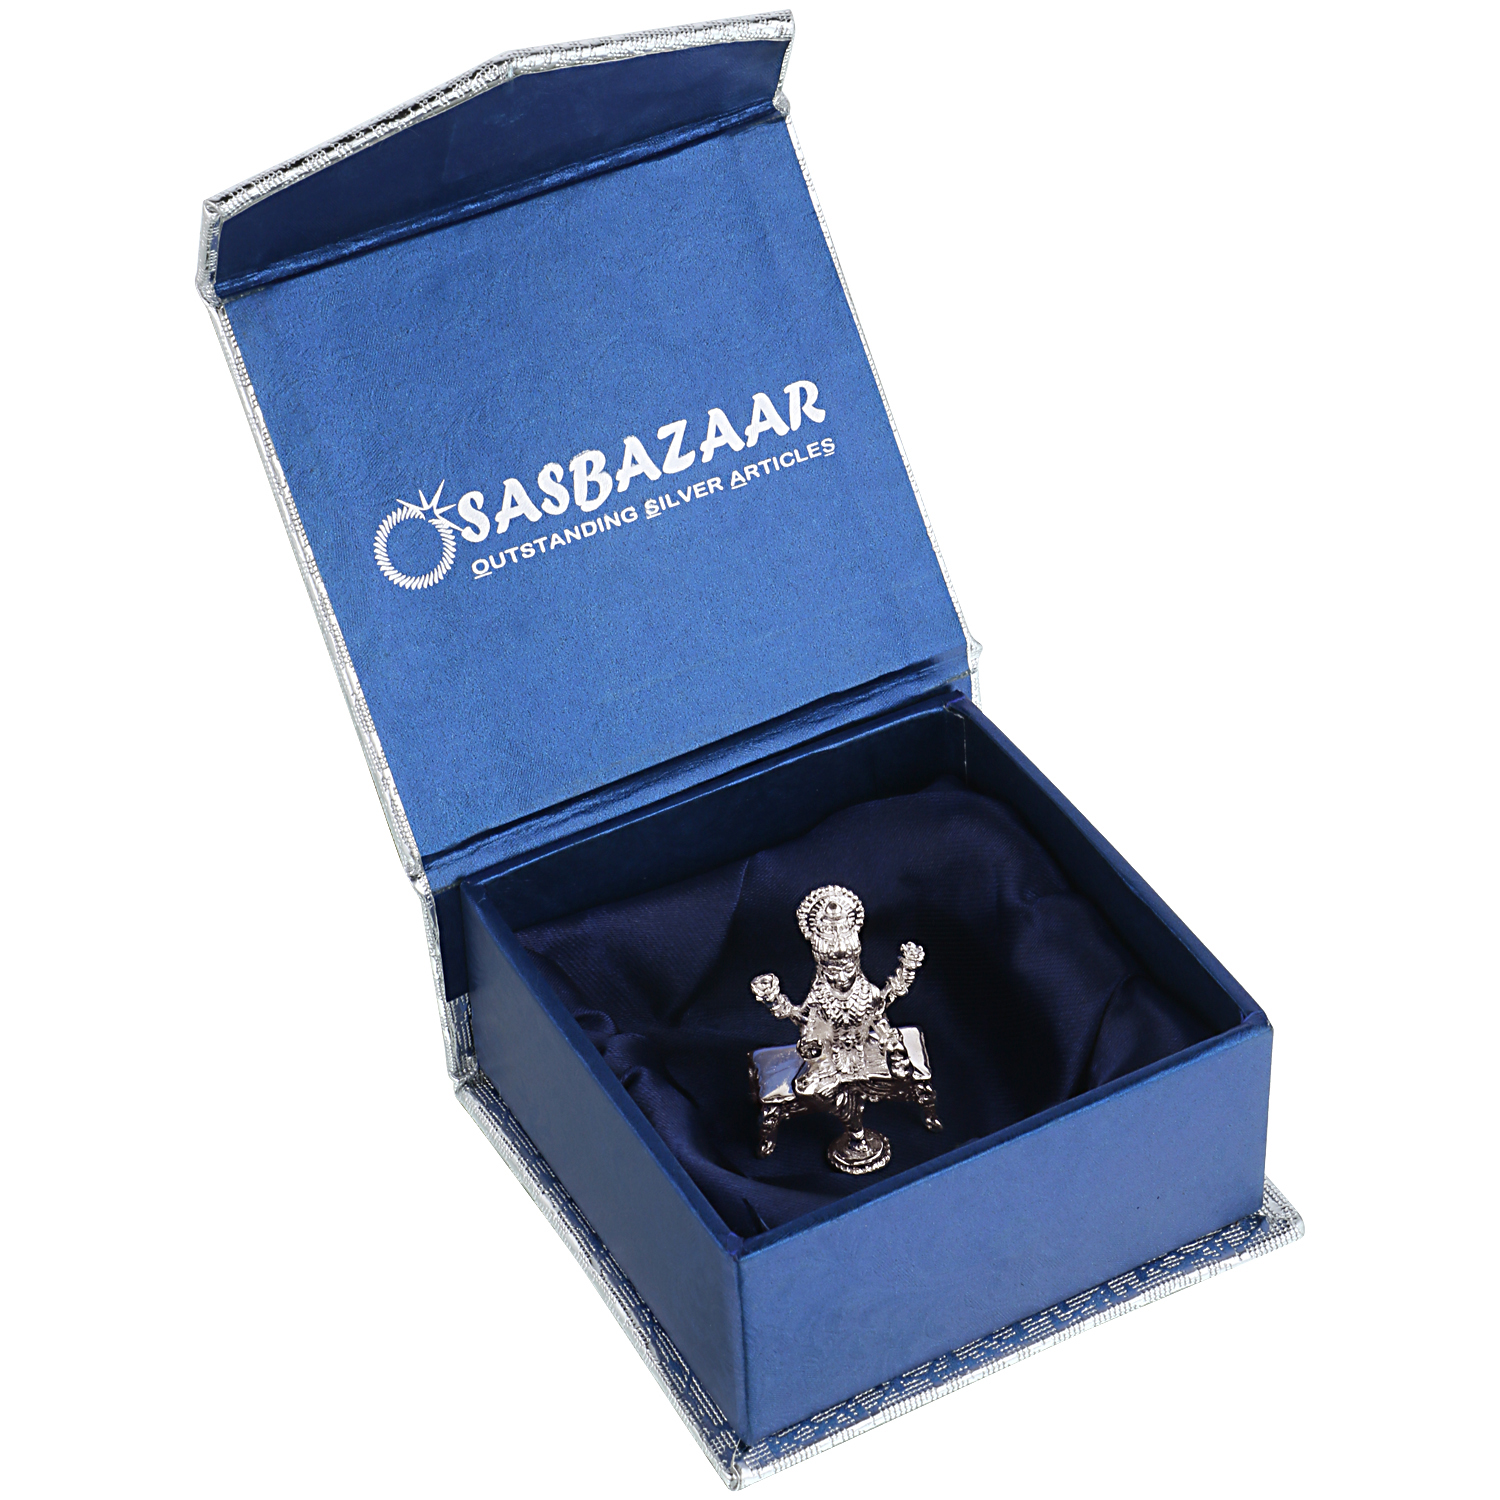 Laxmi ji in Silver by Osasbazaar Packaging